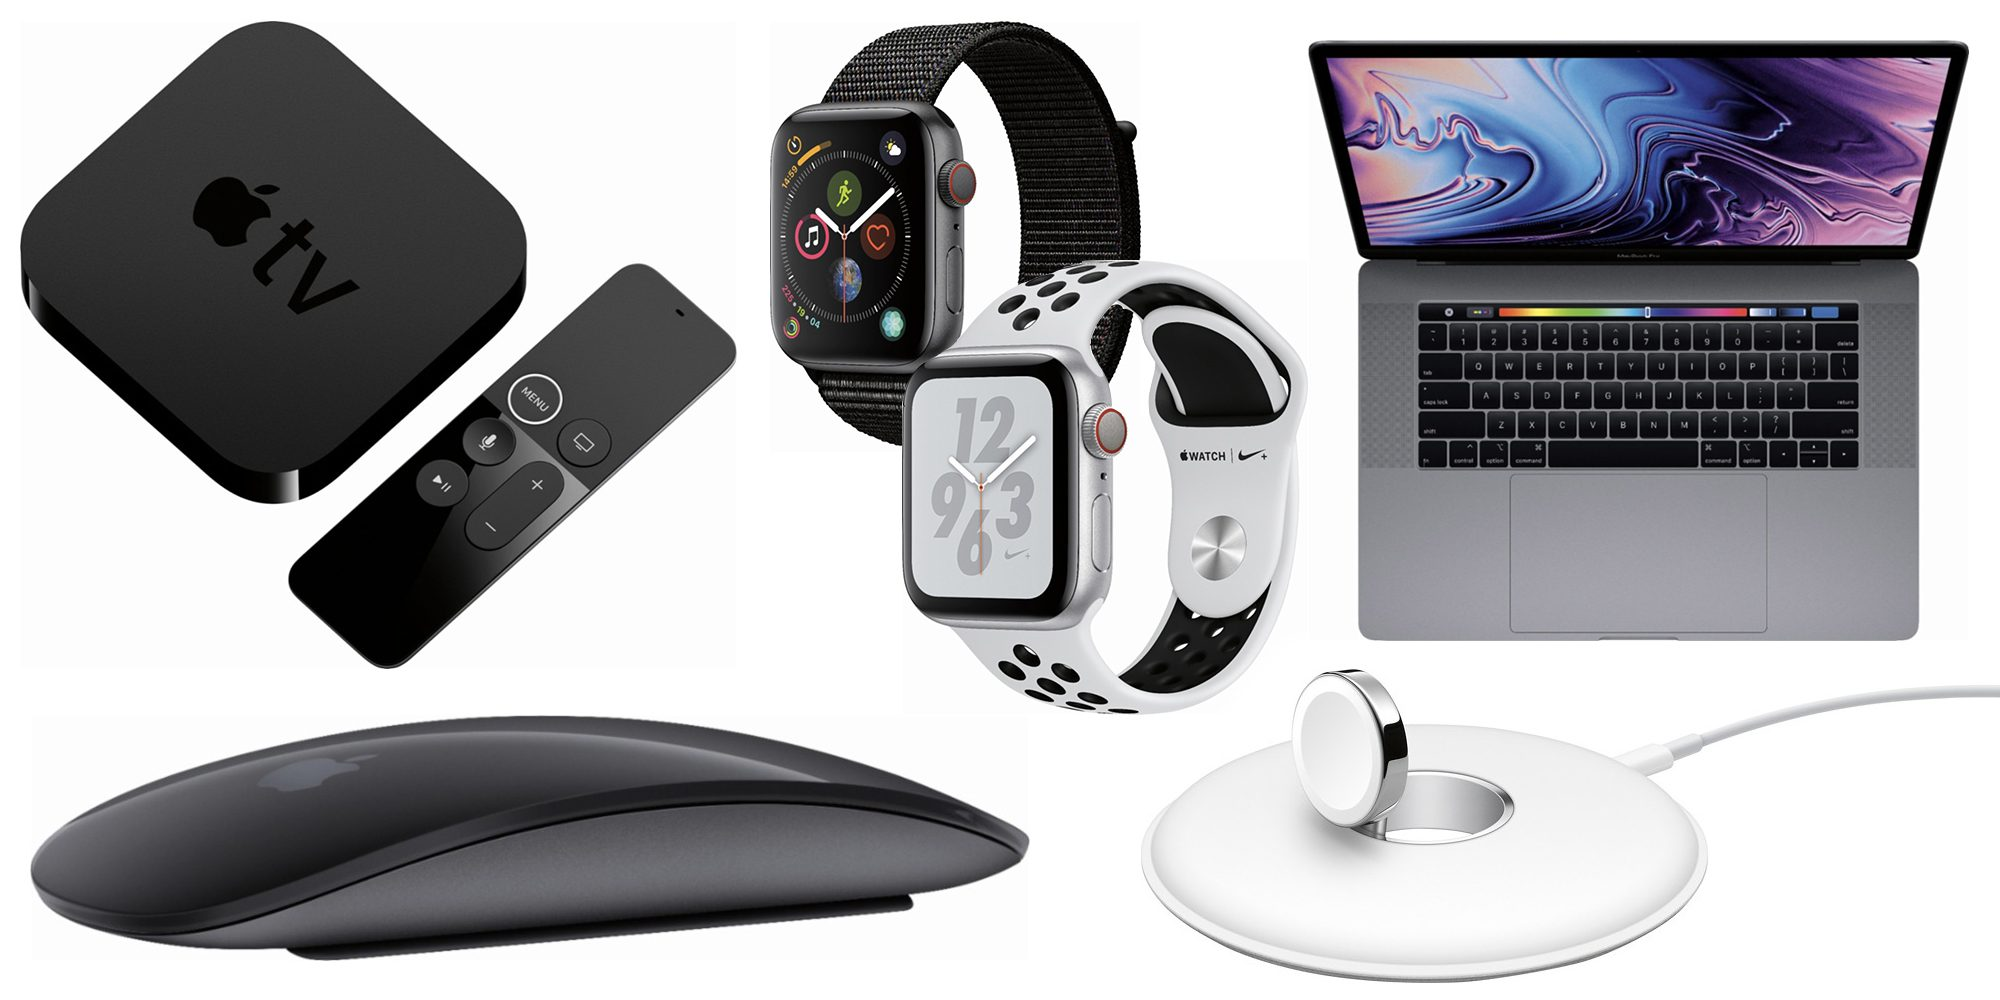 9to5Toys Lunch Break: Apple Watch Series 4 LTE $459, Leather MacBook Bags from $19, iPhone X/S/Max/R Cases $4, more